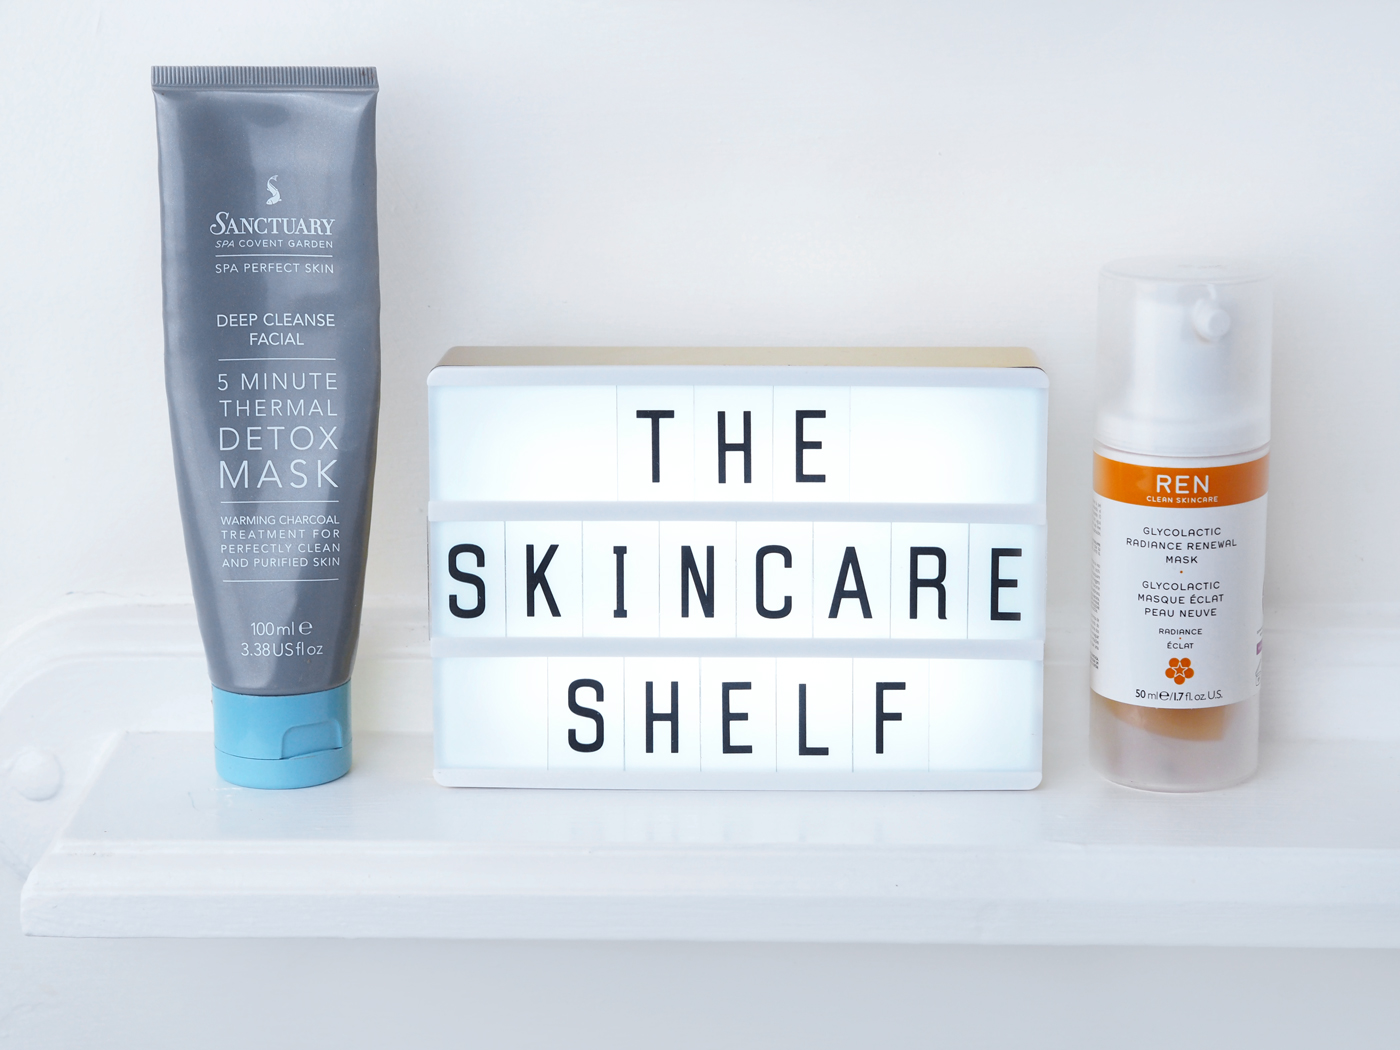 Winter Skincare Shelf masks